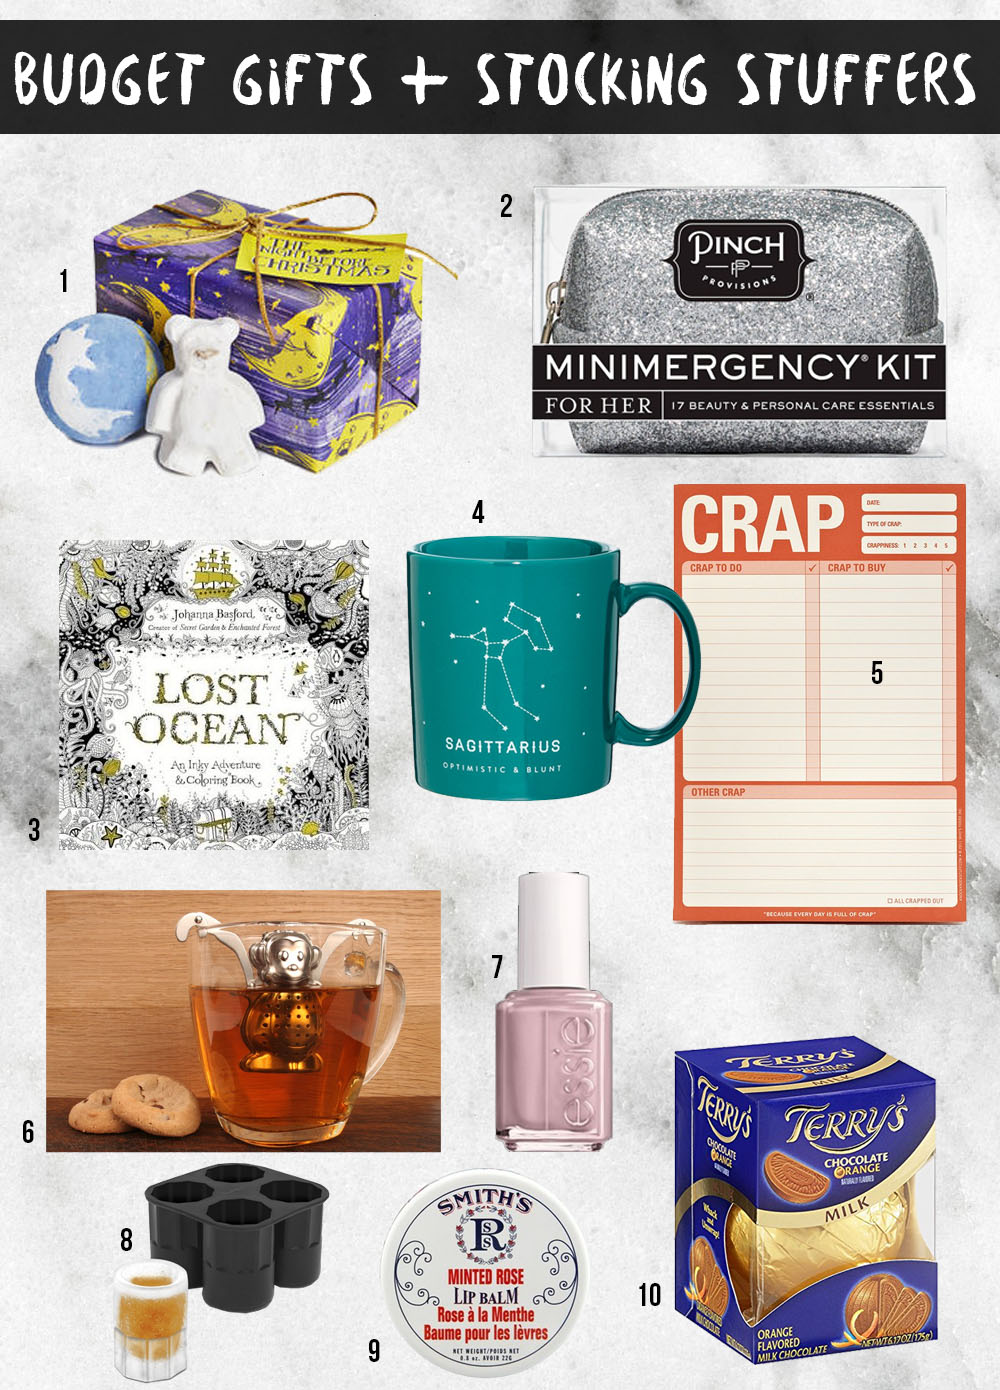 Here Are Some Handy Budget Gift Ideas That Cost Less Than $25, And Work  Well As Stocking Stuffers, Office Gifts, Or Presents For Secret Santa!